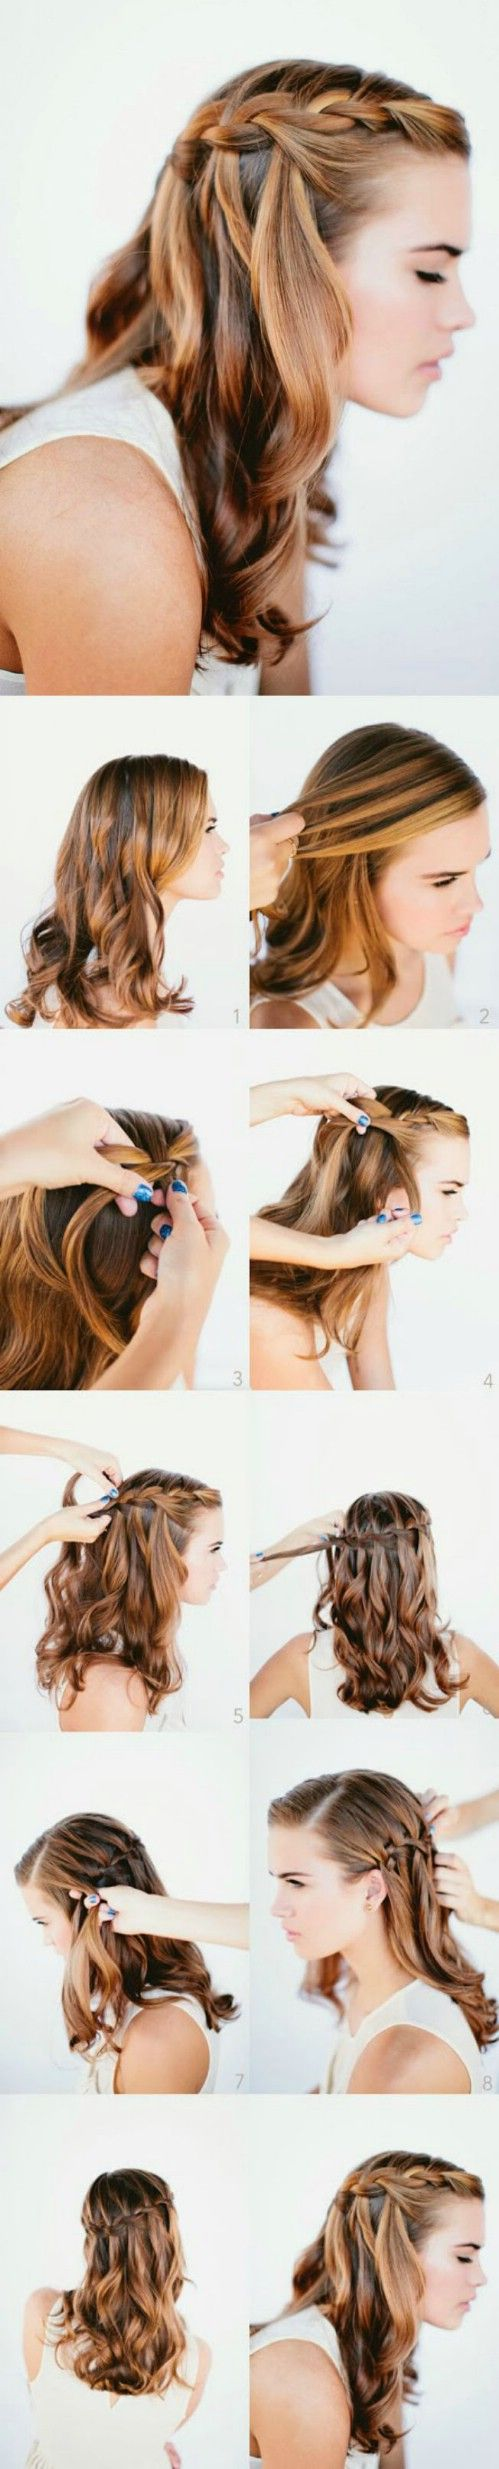 Superb 1000 Ideas About 5 Minute Hairstyles On Pinterest Hairstyles Hairstyles For Women Draintrainus